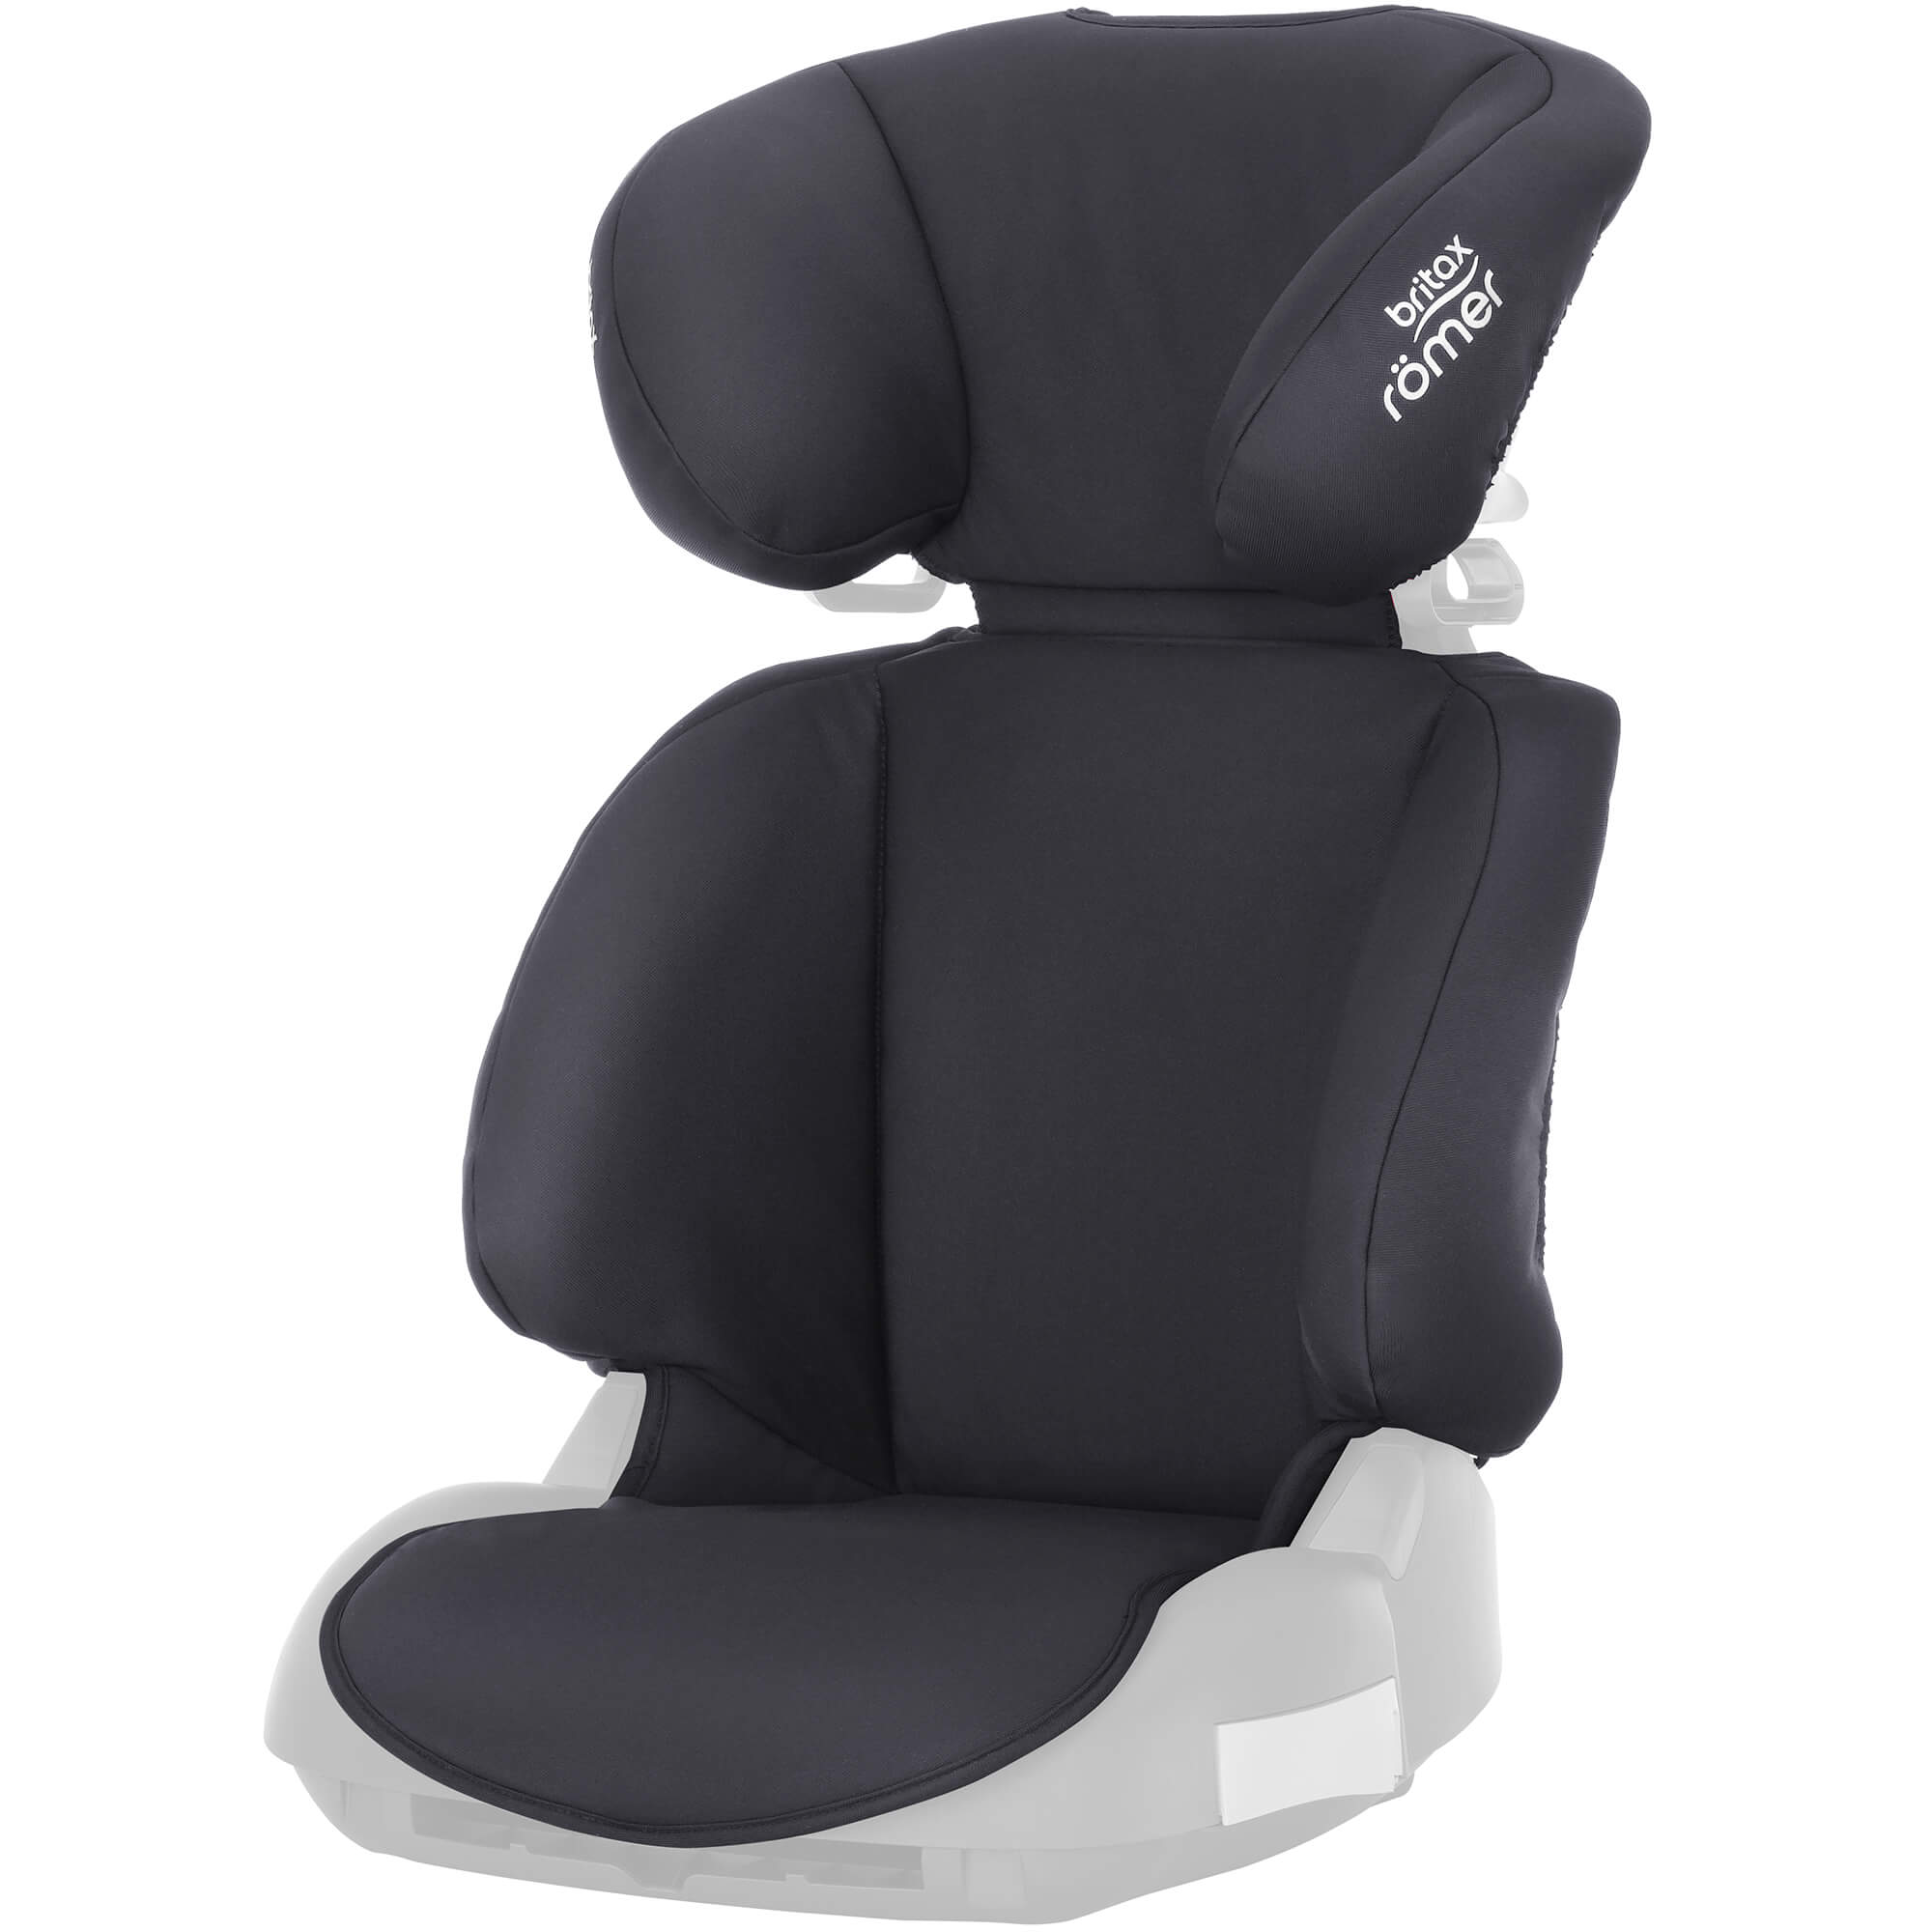 Sensational Britax Romer Seat Cover For Adventure Storm Grey Bralicious Painted Fabric Chair Ideas Braliciousco